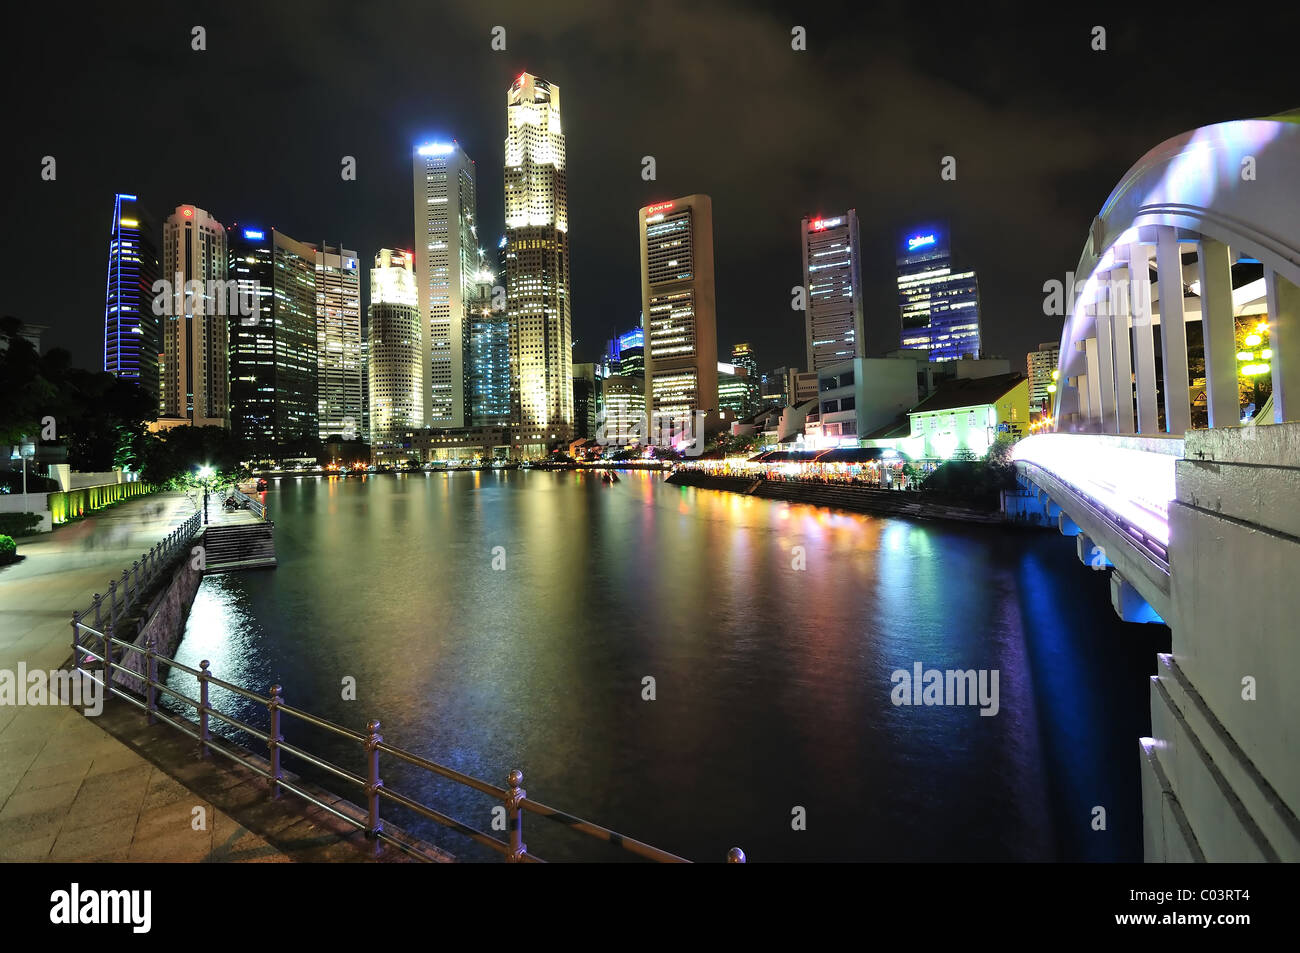 A view of the Singapore business district skyline from the Elgin Bridge. Stock Photo